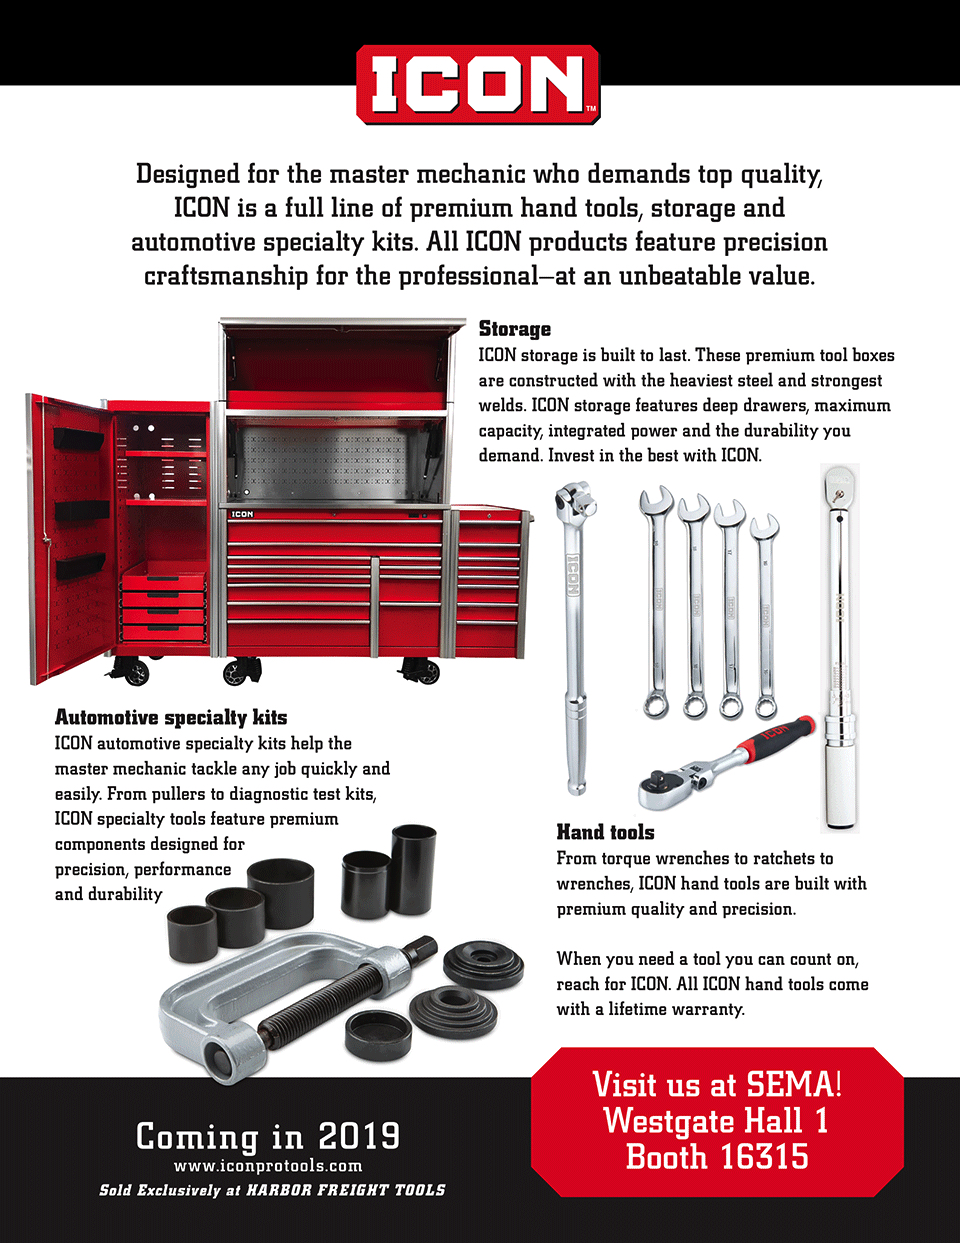 ICON storage, automotive specialty kits and hand tools.